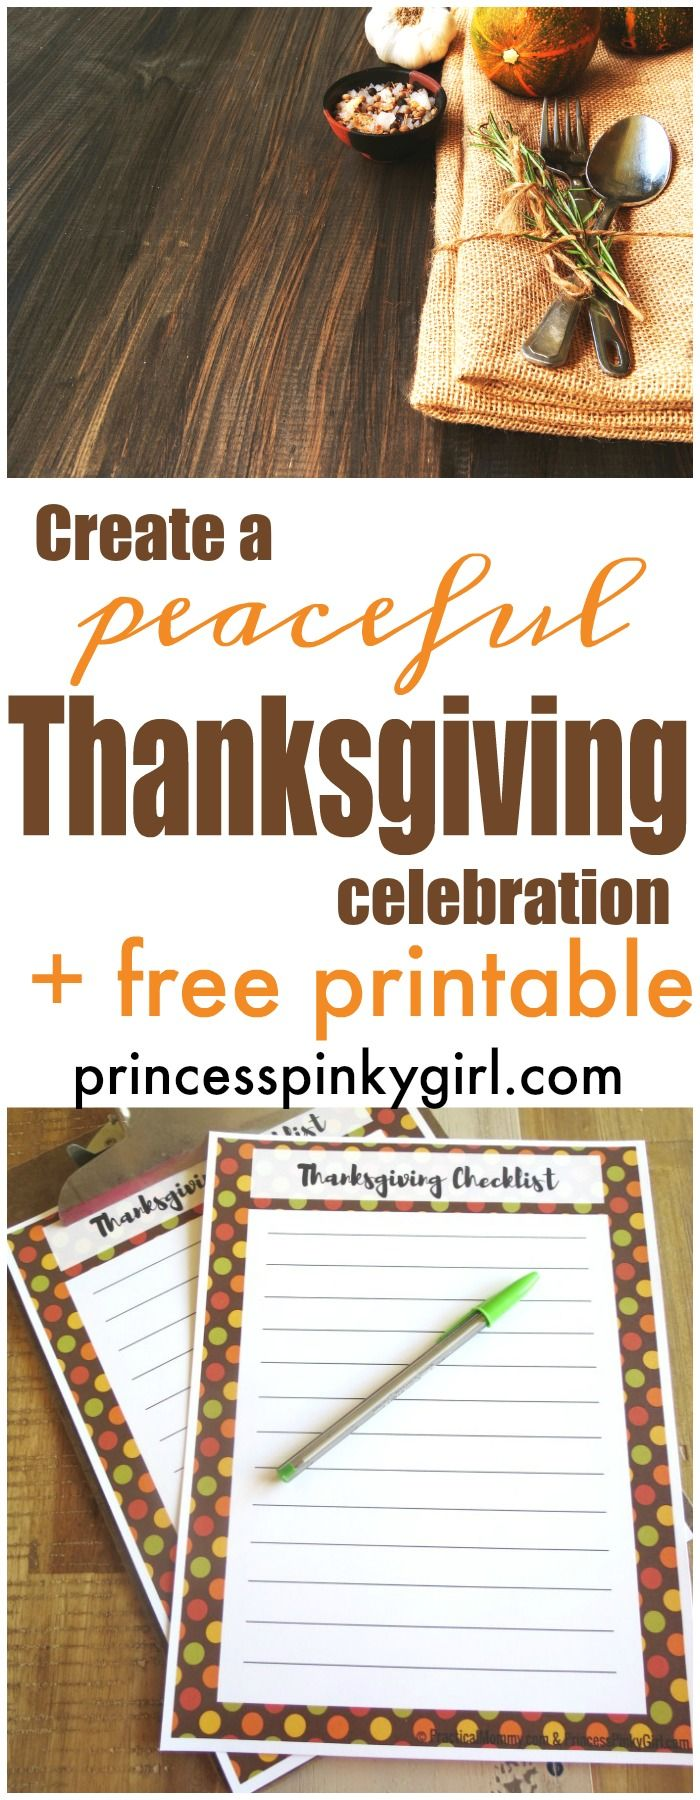 5-tips-to-create-a-peaceful-thanksgiving-celebration-a-free-printable-checklist